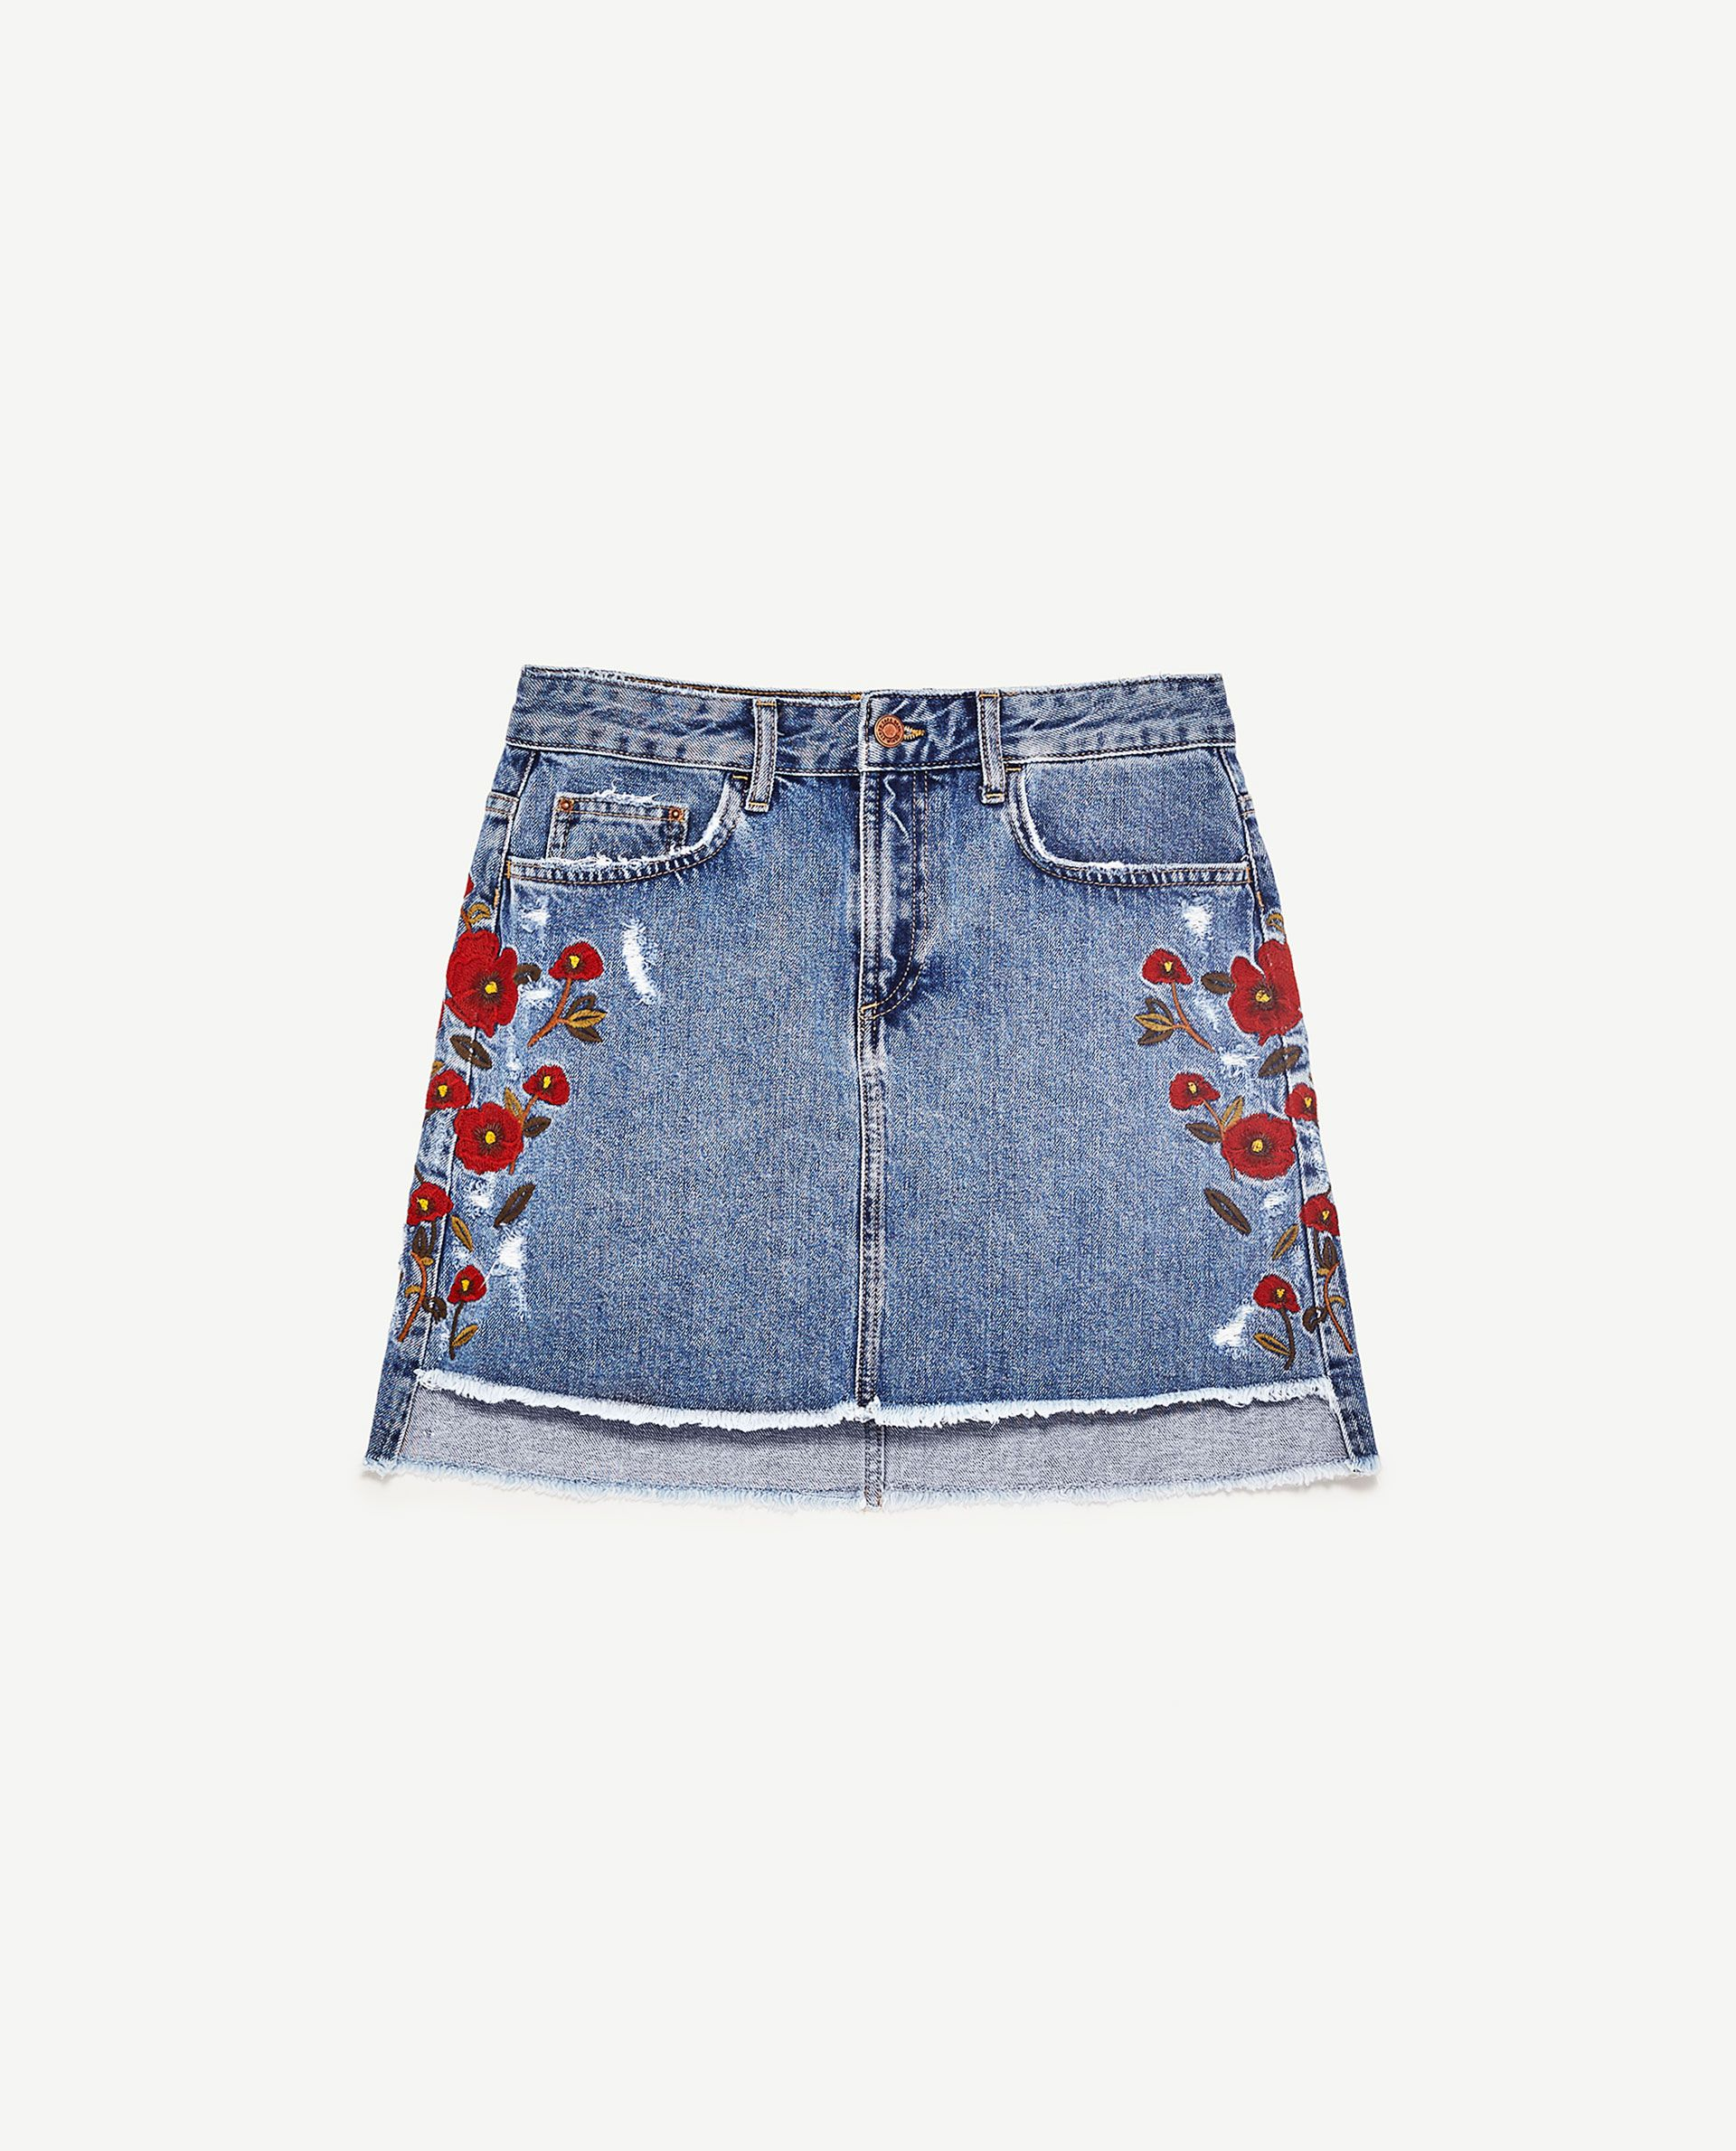 4cac8a4fd Image 6 of FLORAL EMBROIDERED DENIM SKIRT from Zara | moda | Faldas ...